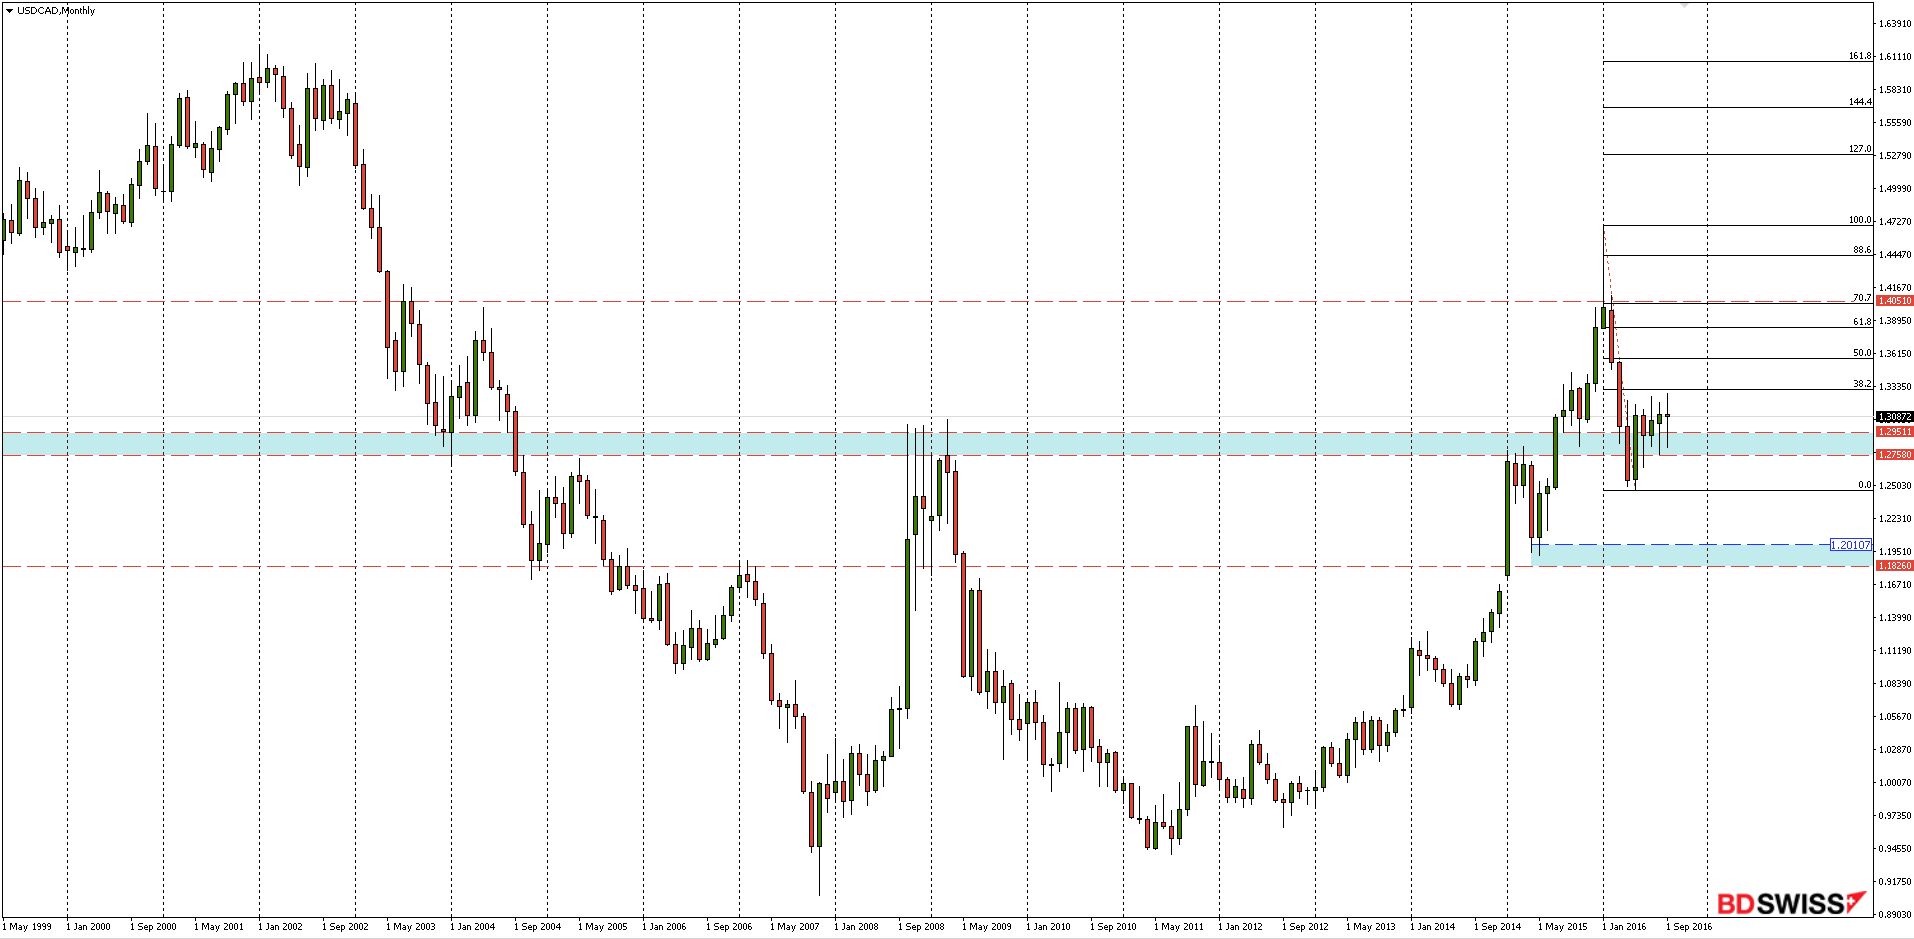 USDCAD Monthly